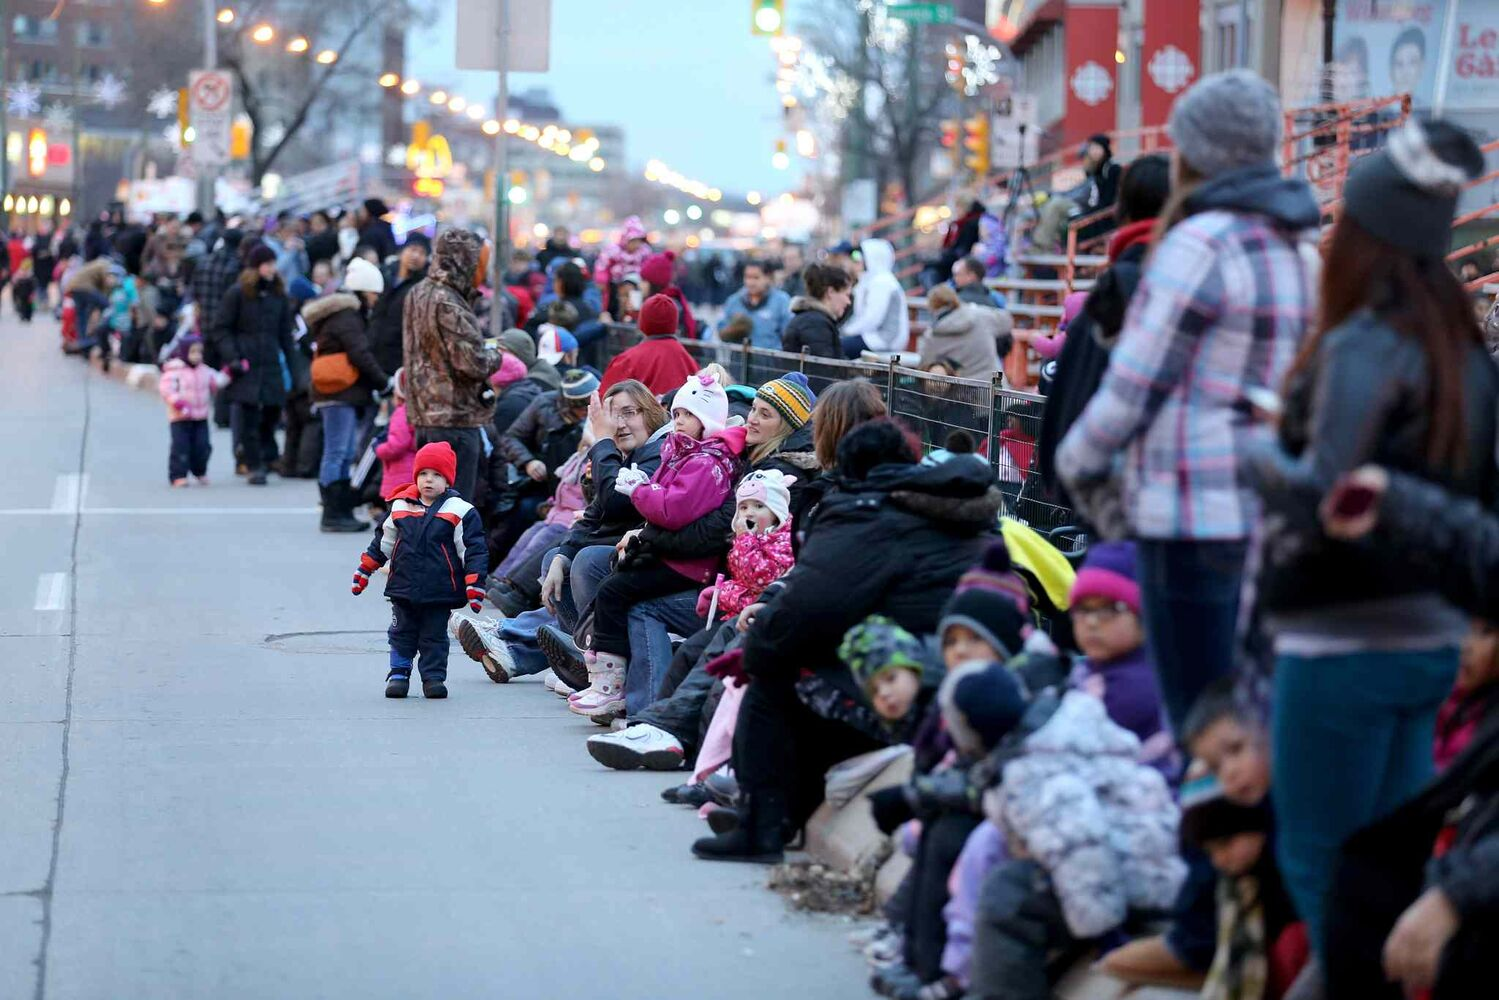 Crowds gather to get a good spot to see the parade. (TREVOR HAGAN / WINNIPEG FREE PRESS)